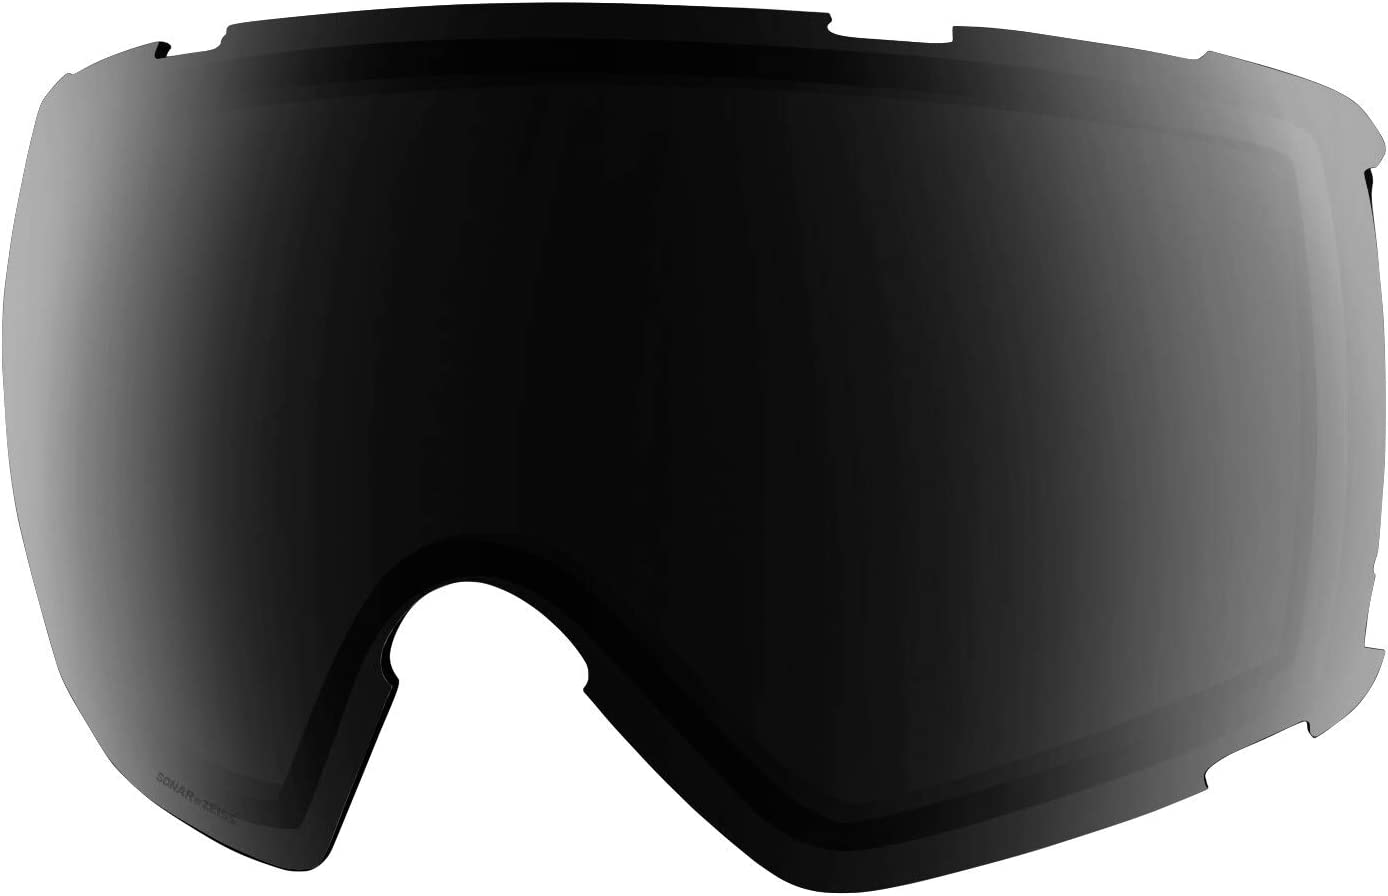 A surprise price is realized Anon Lowest price challenge Circuit Lens Goggle